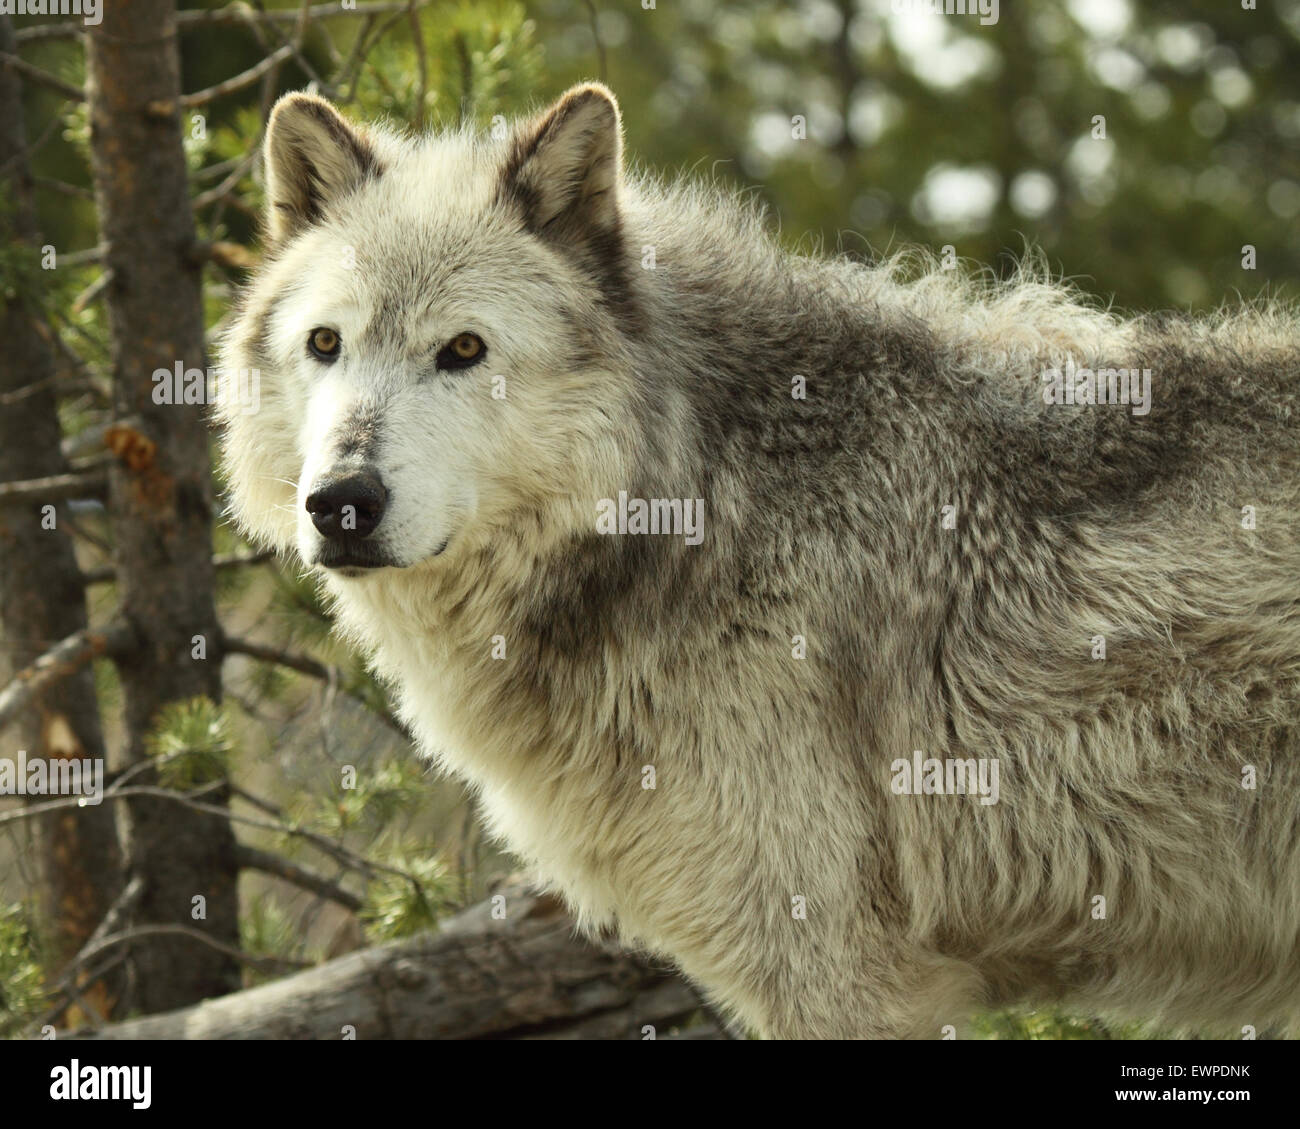 A Gray Wolf pausing in a Montana woodland. Stock Photo